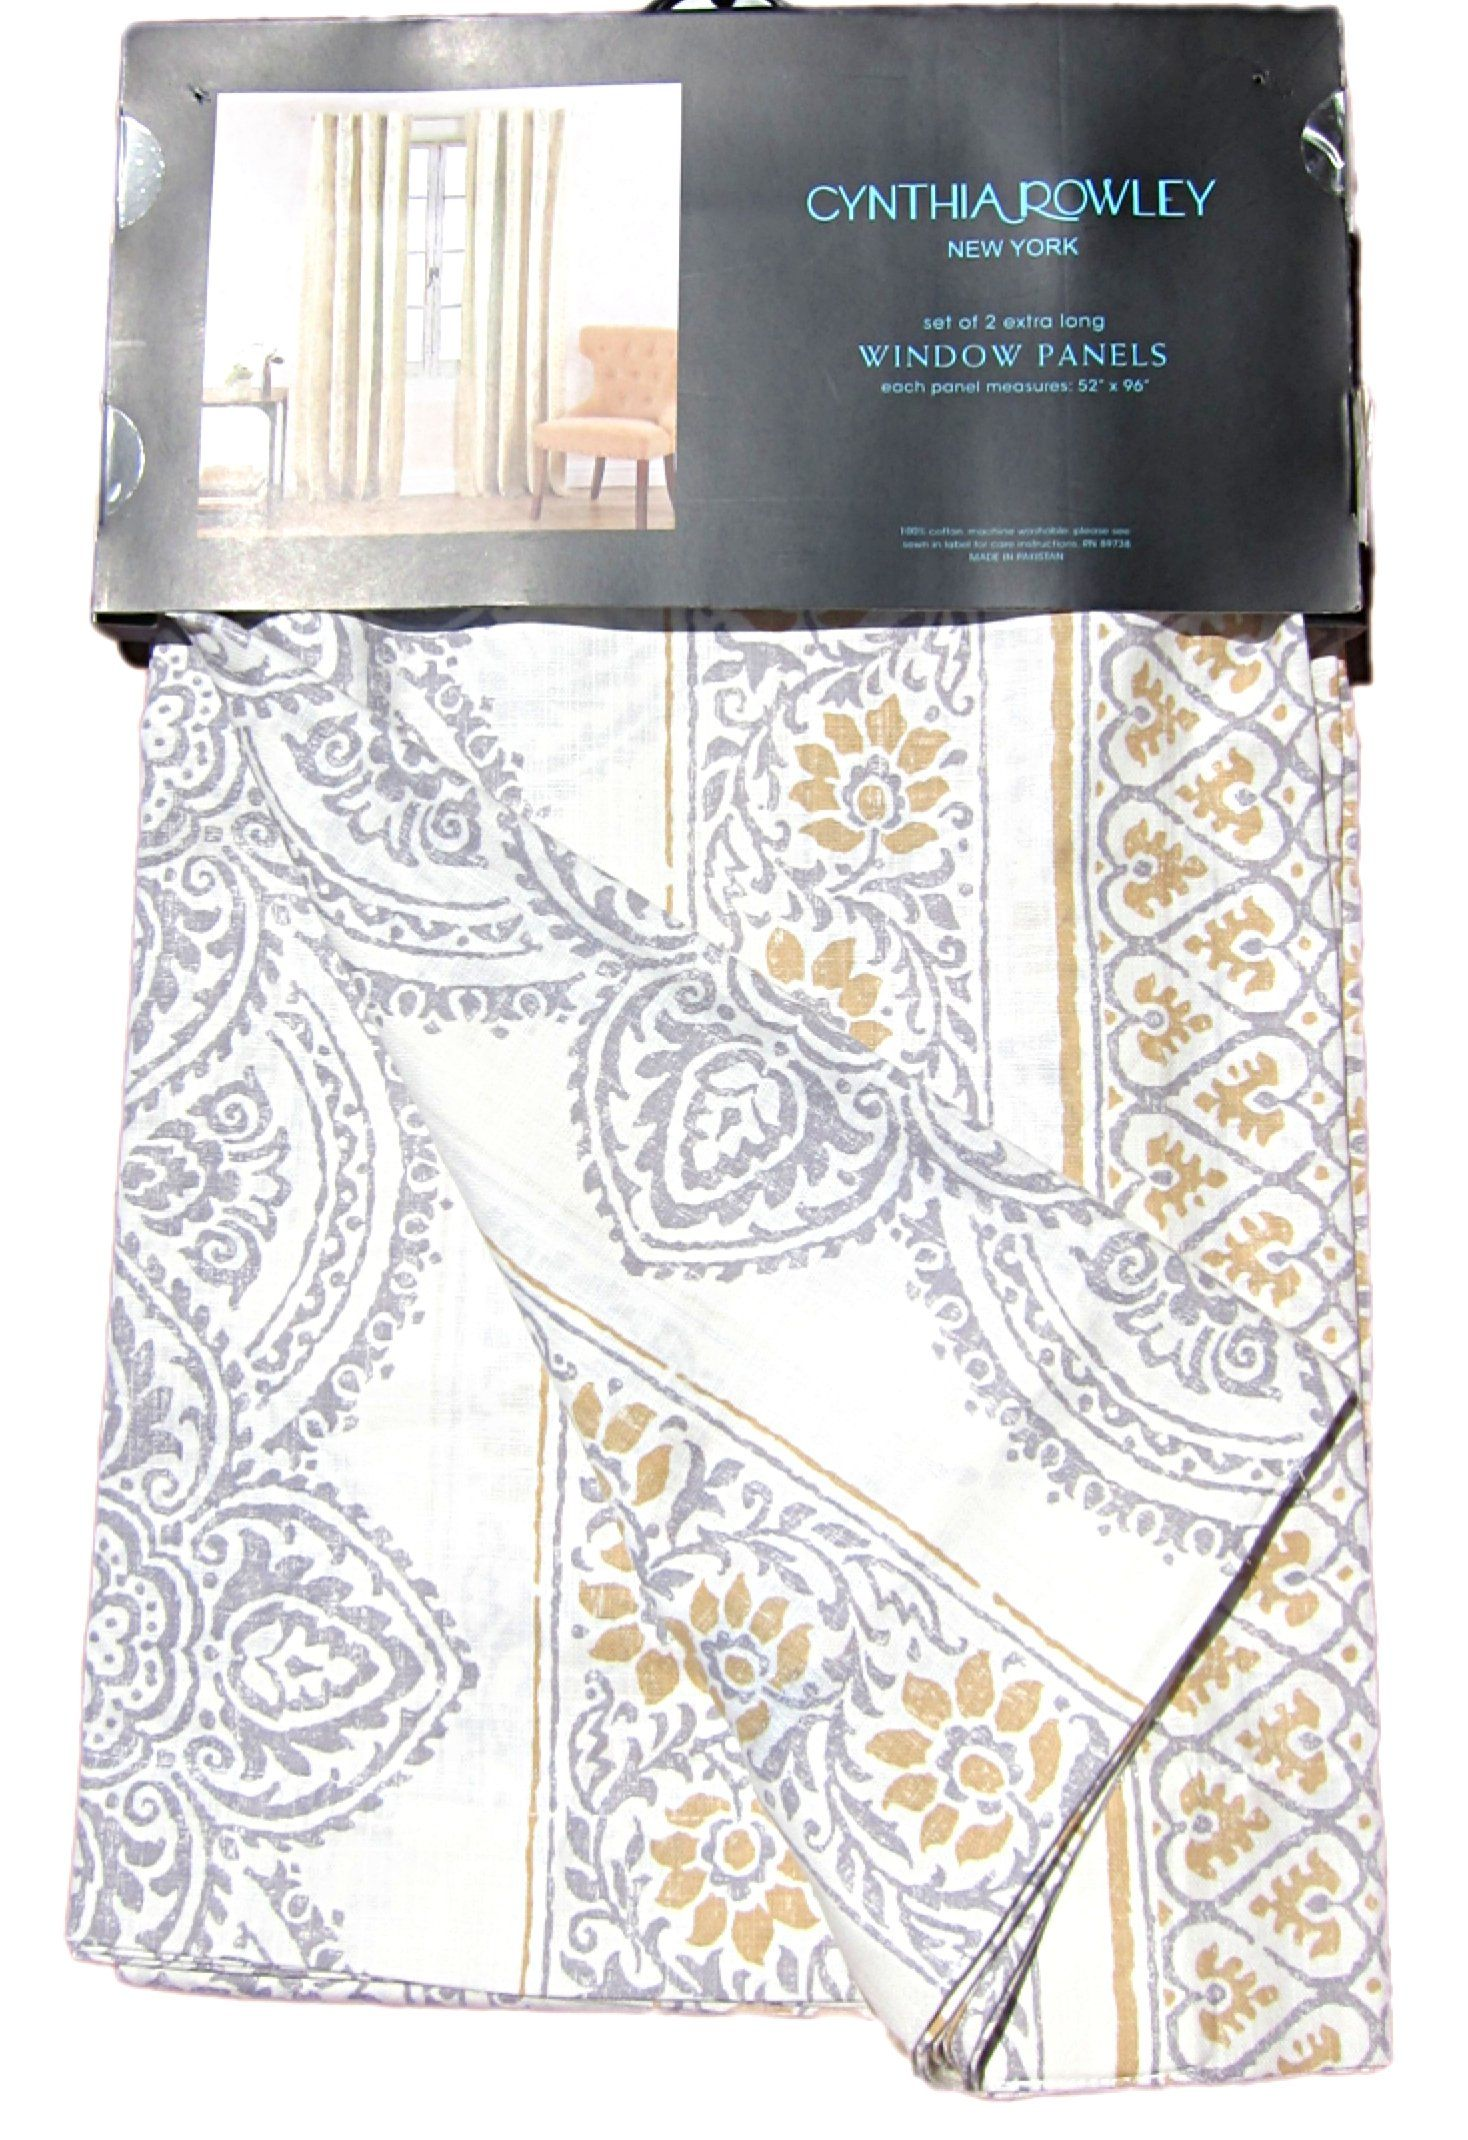 Amazon Com Cynthia Rowley Window Panels Set Of 2 Large Medallions Damask Paisley Scrolls Cotton Window Curtains Hidden T Window Panels Window Curtains Damask